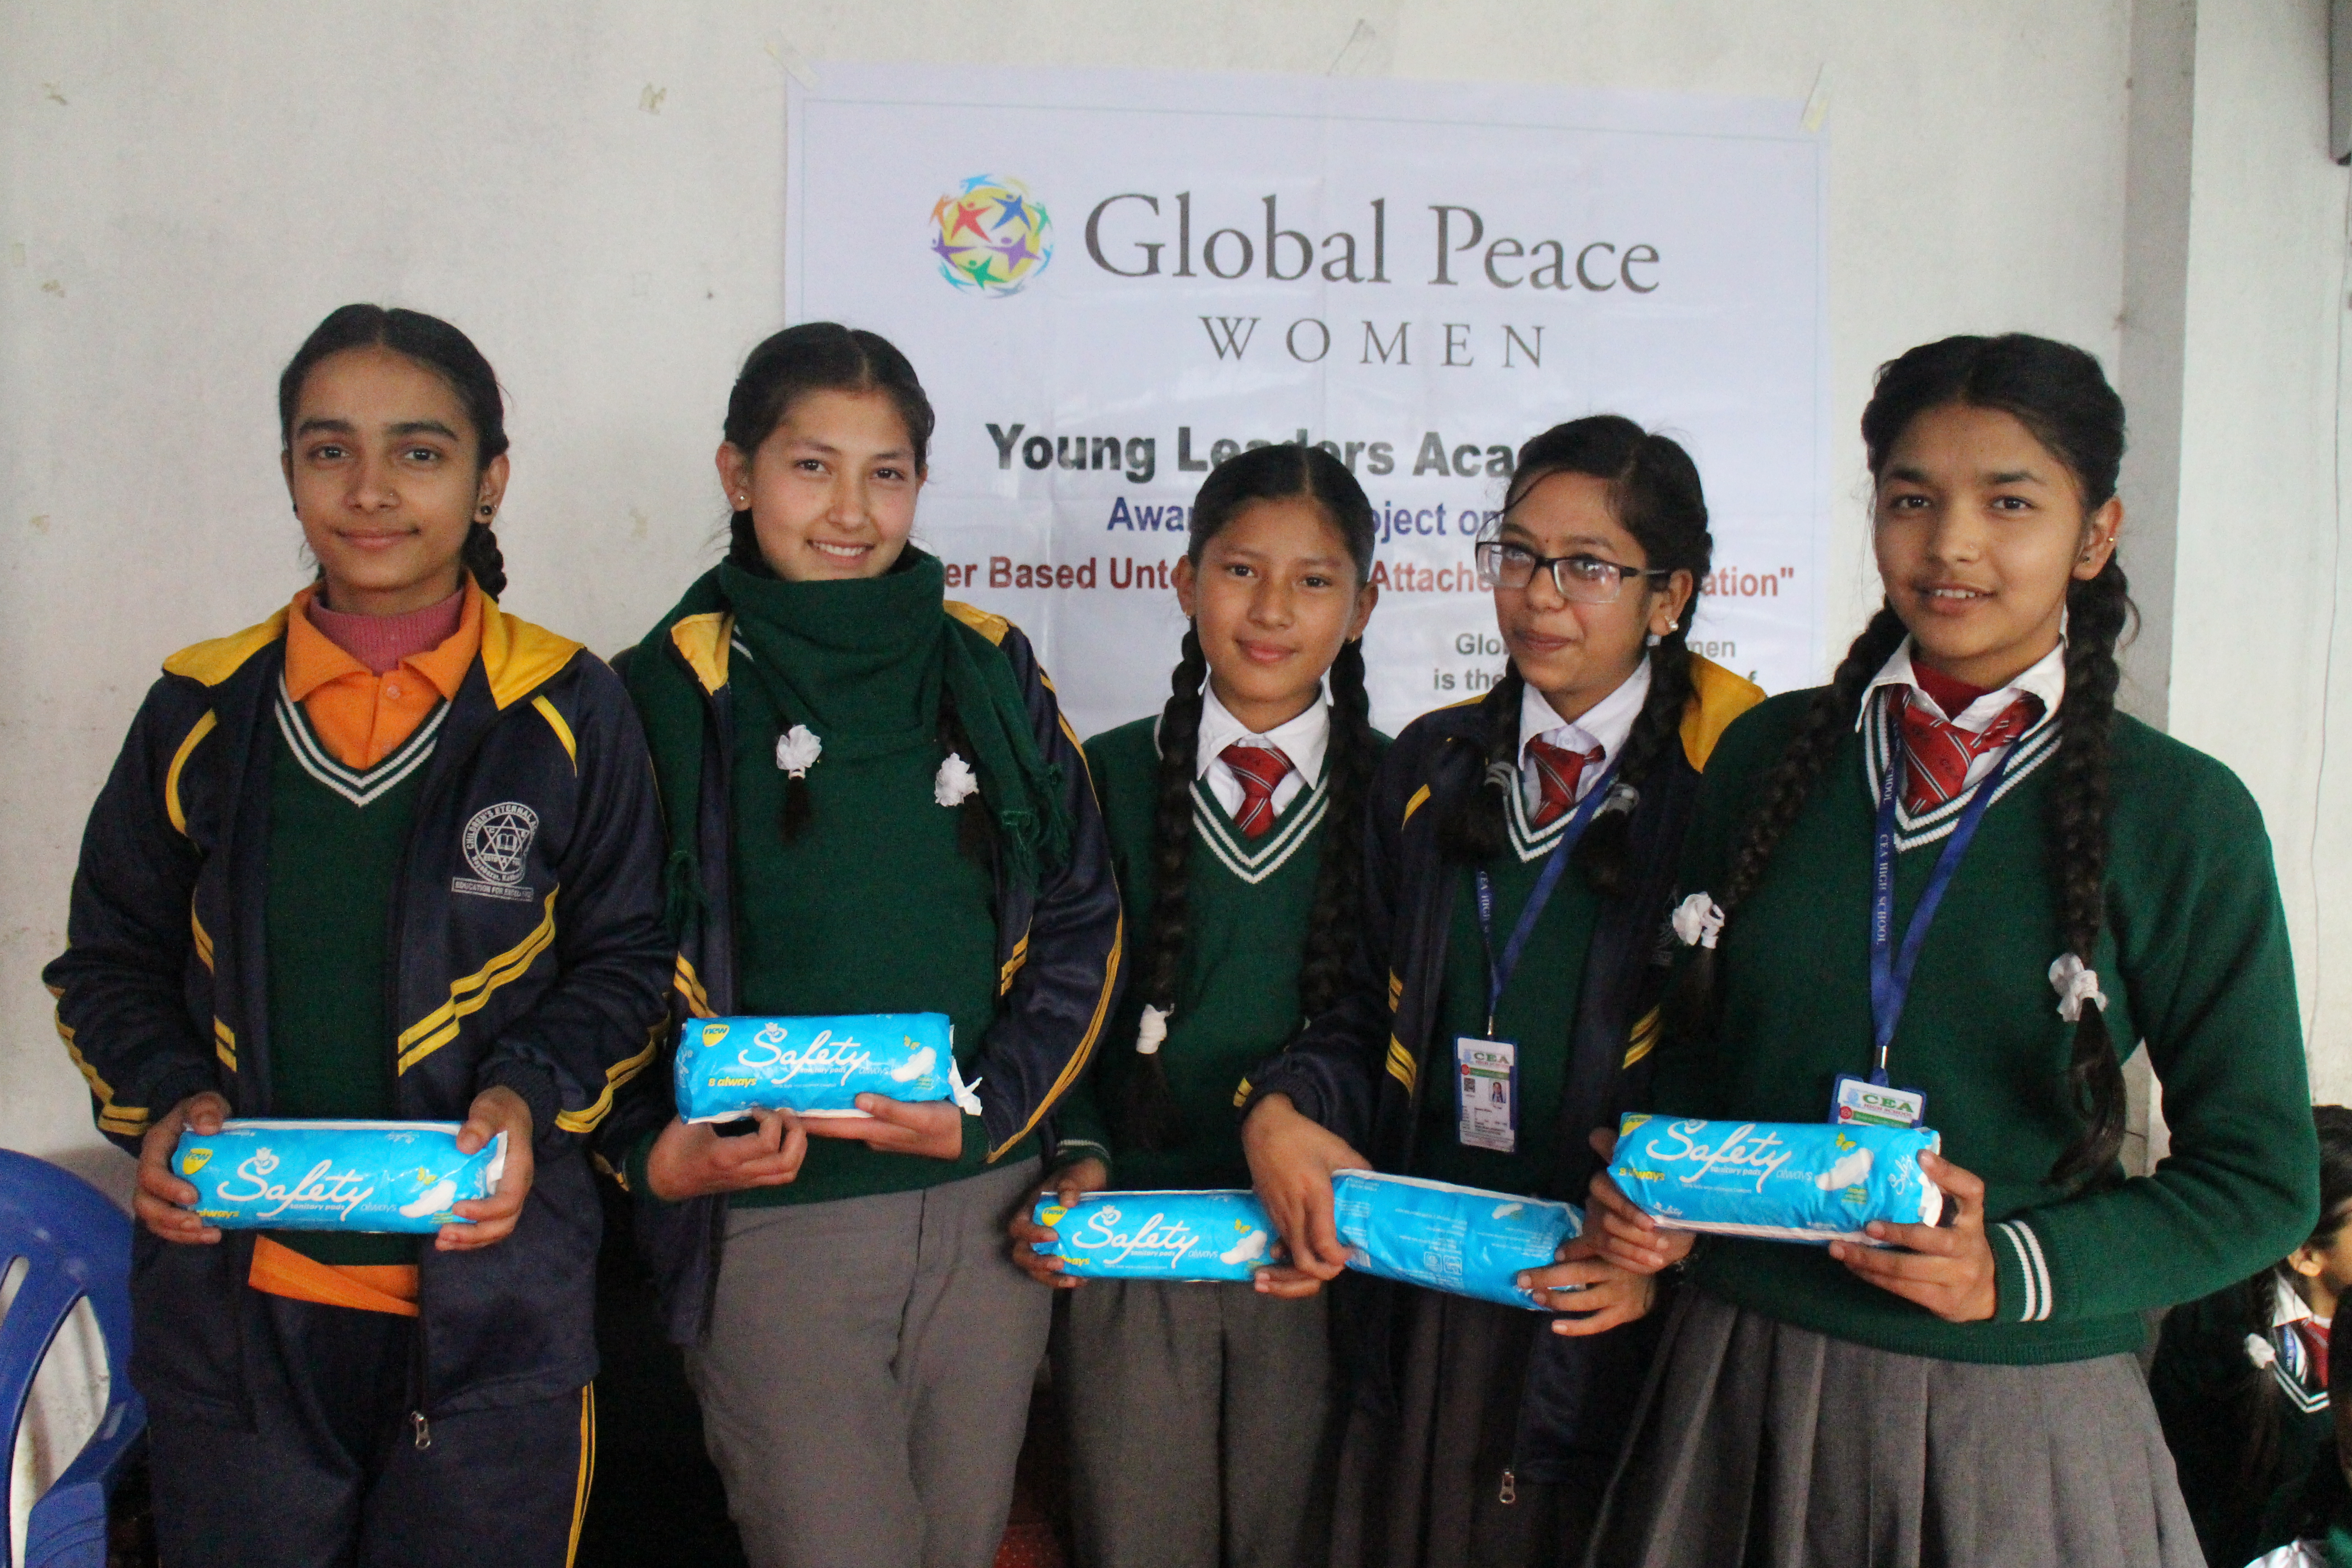 Girls attend leadership and women's health workshop in Nepal